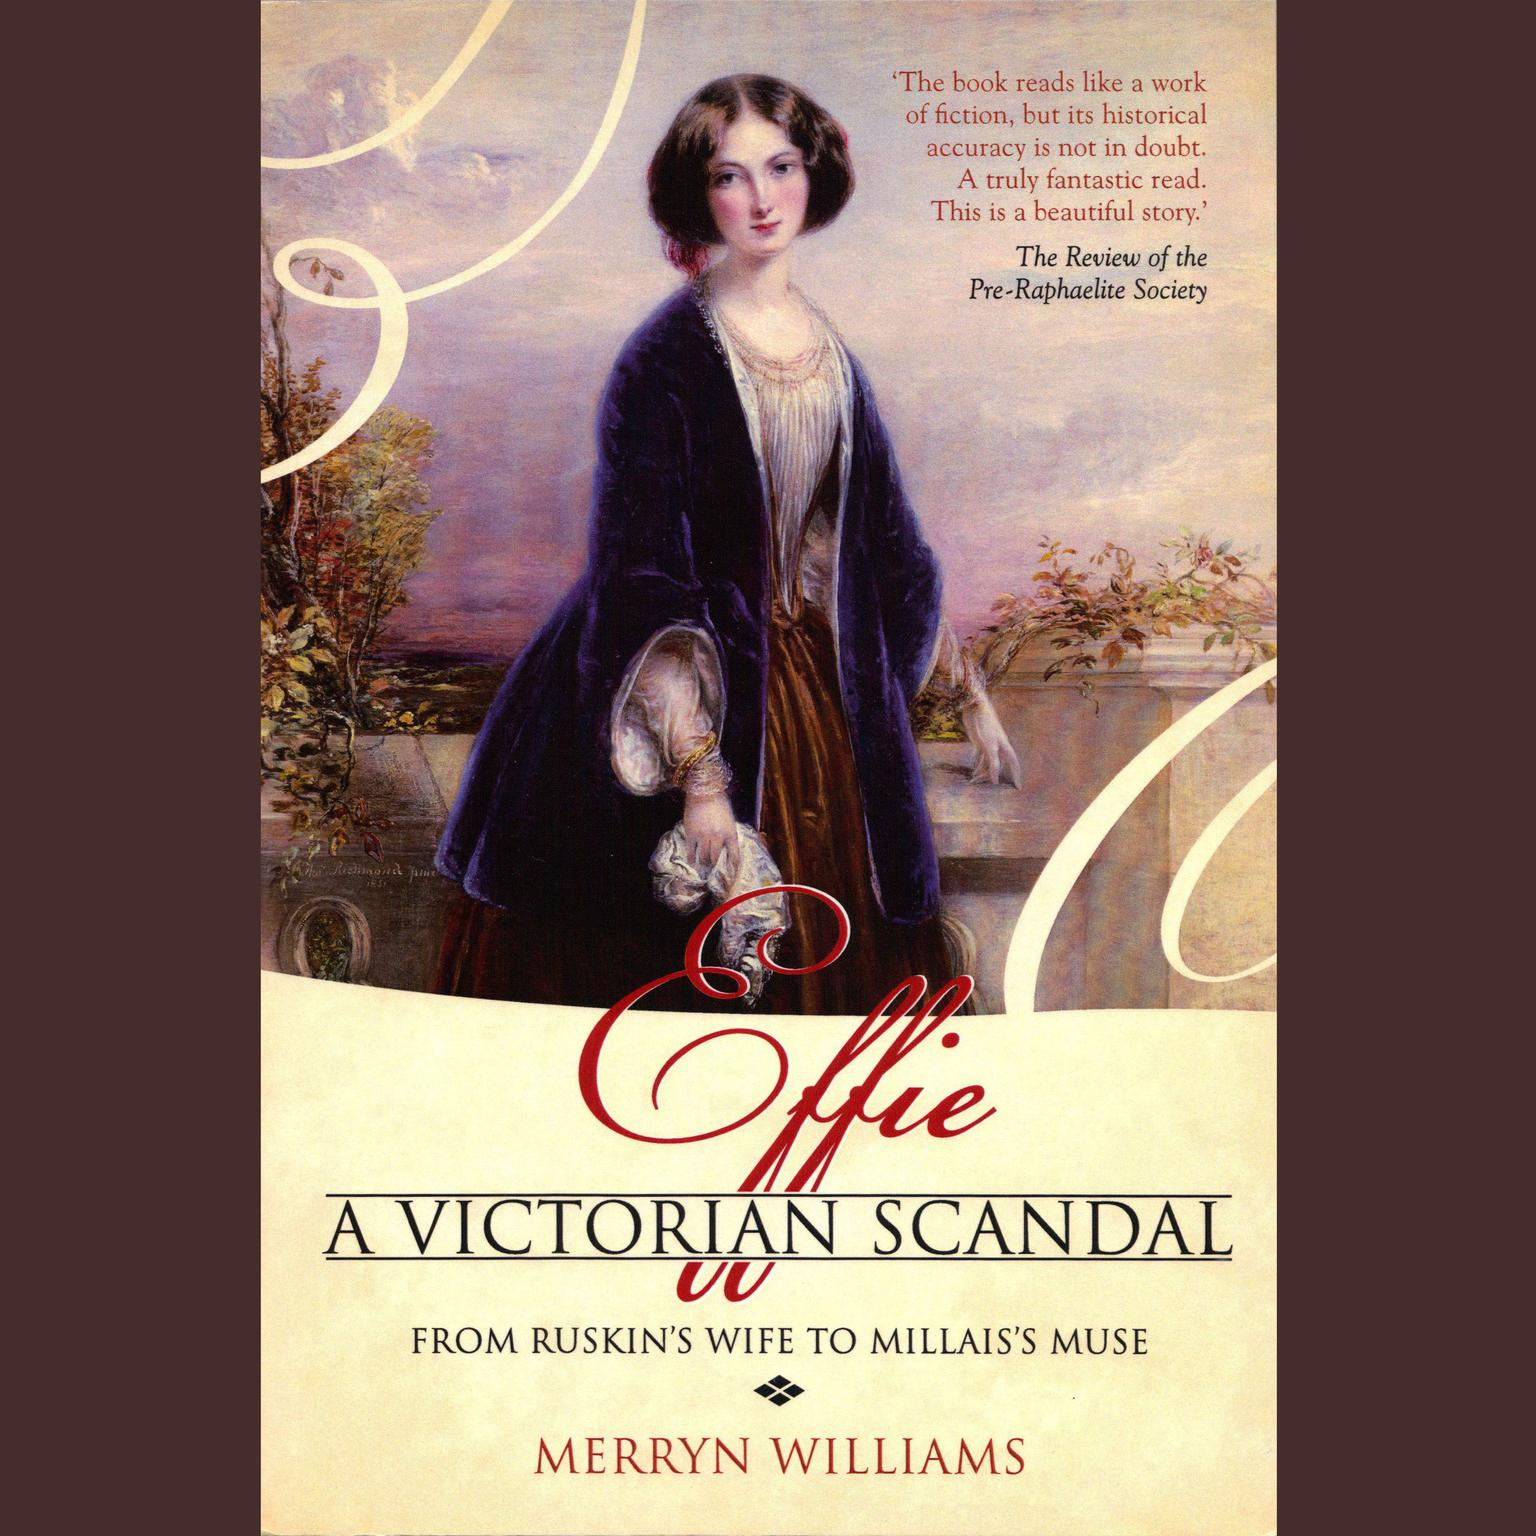 Printable Effie: A Victorian Scandal - From Ruskin's Wife to Millais's Muse Audiobook Cover Art